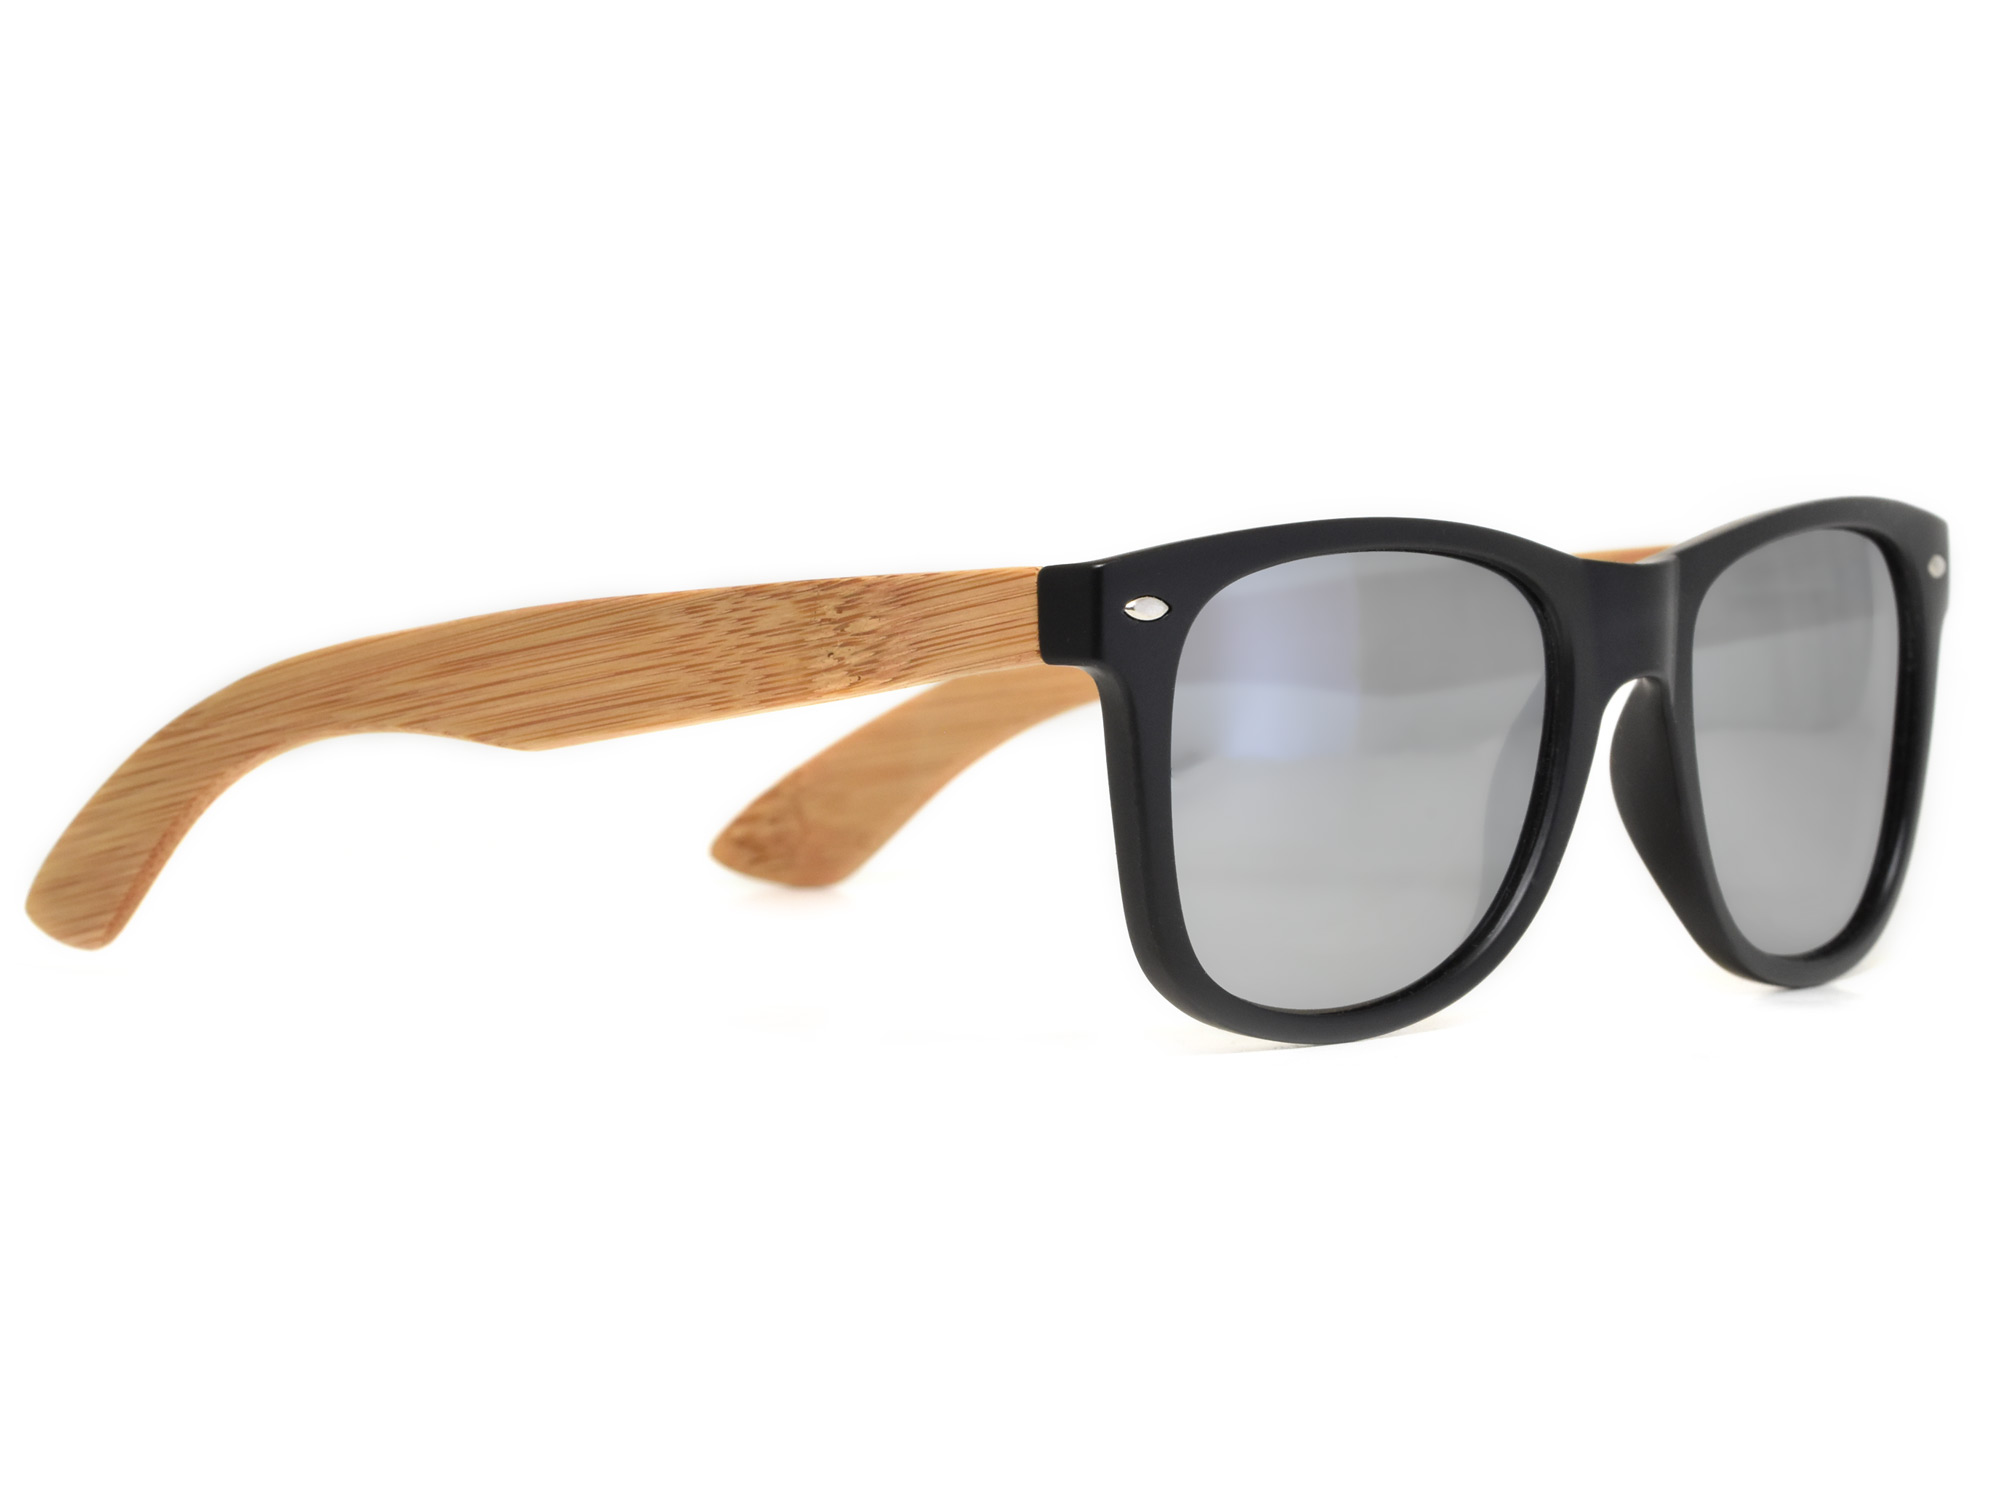 Bamboo wood sunglasses with silver mirrored lenses model right